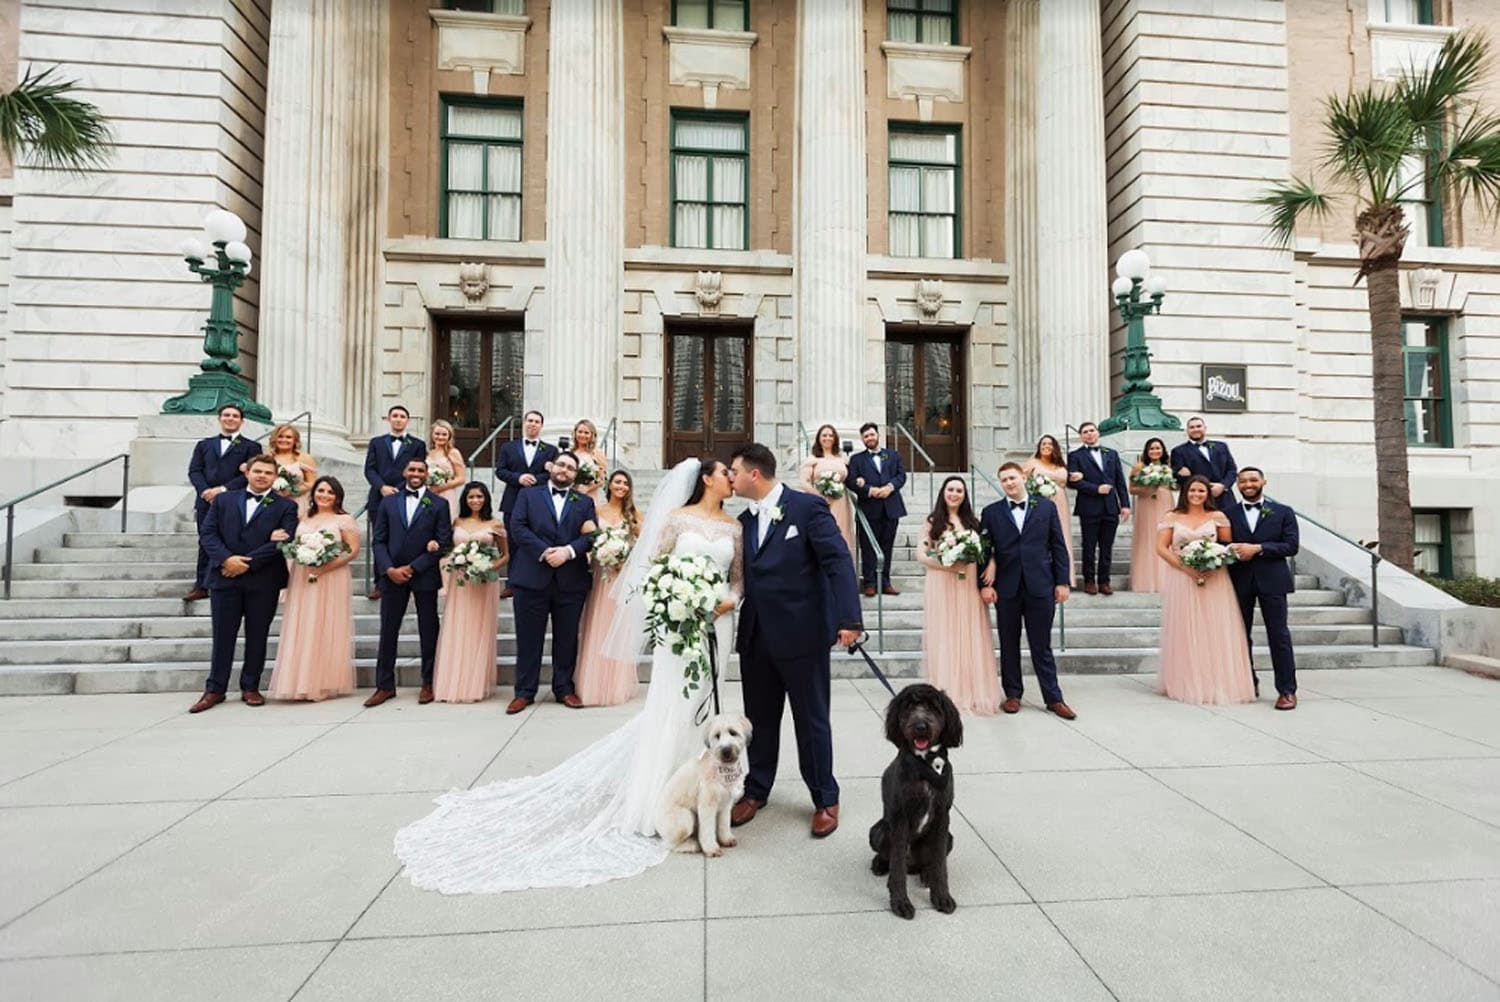 FairyTail Pet Care - wedding party with dogs